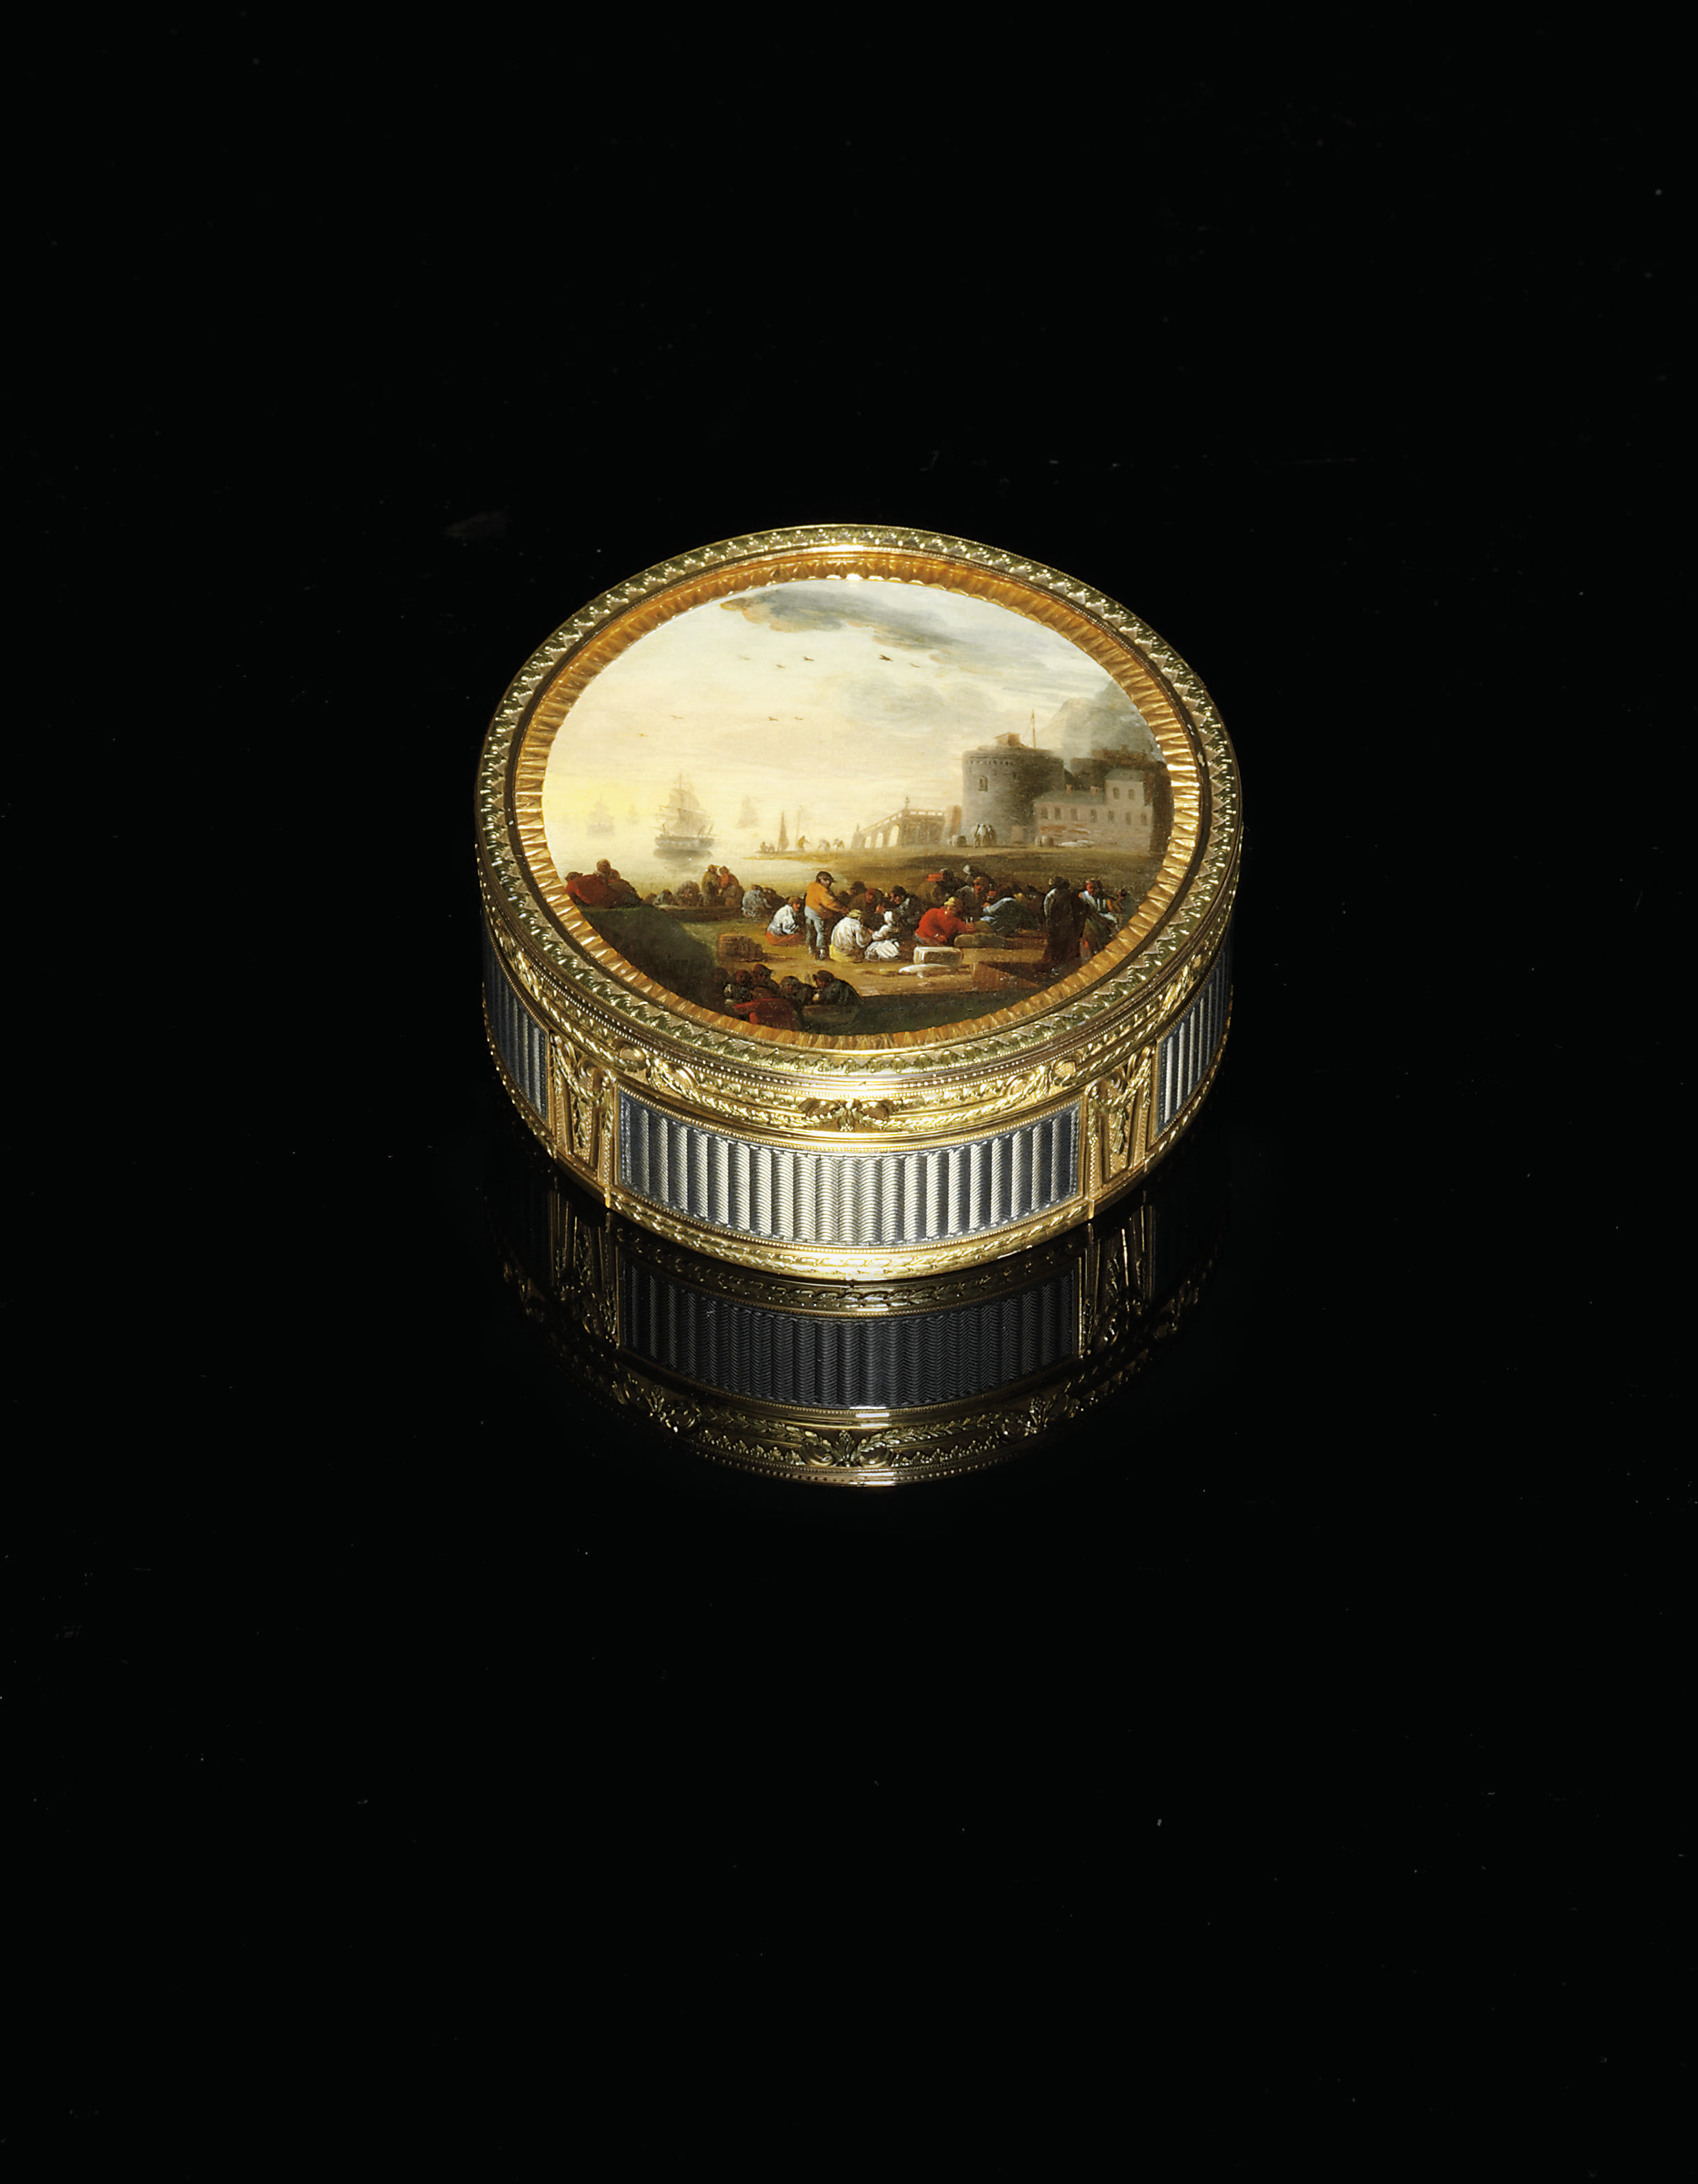 A LOUIS XVI ENAMELLED TWO-COLOUR GOLD SNUFF-BOX SET WITH A MINIATURE